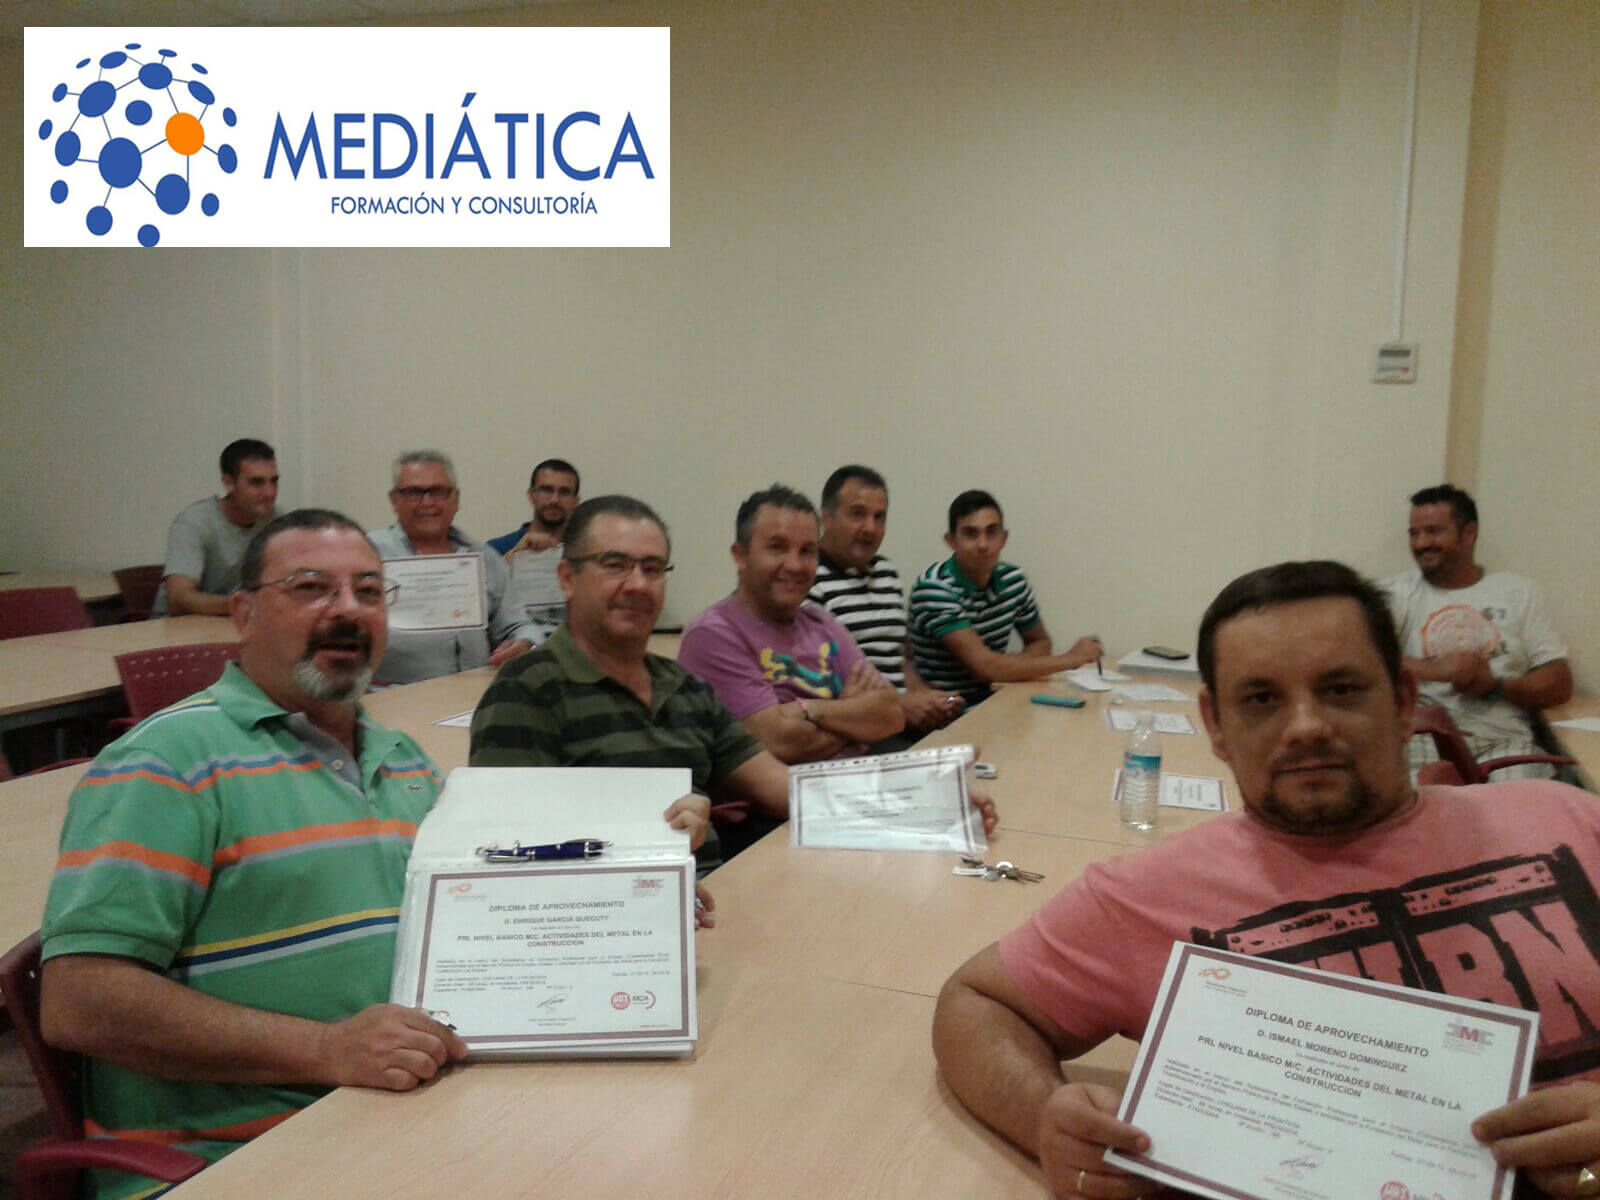 MEDIATICA_PRL_CHICLANA copia